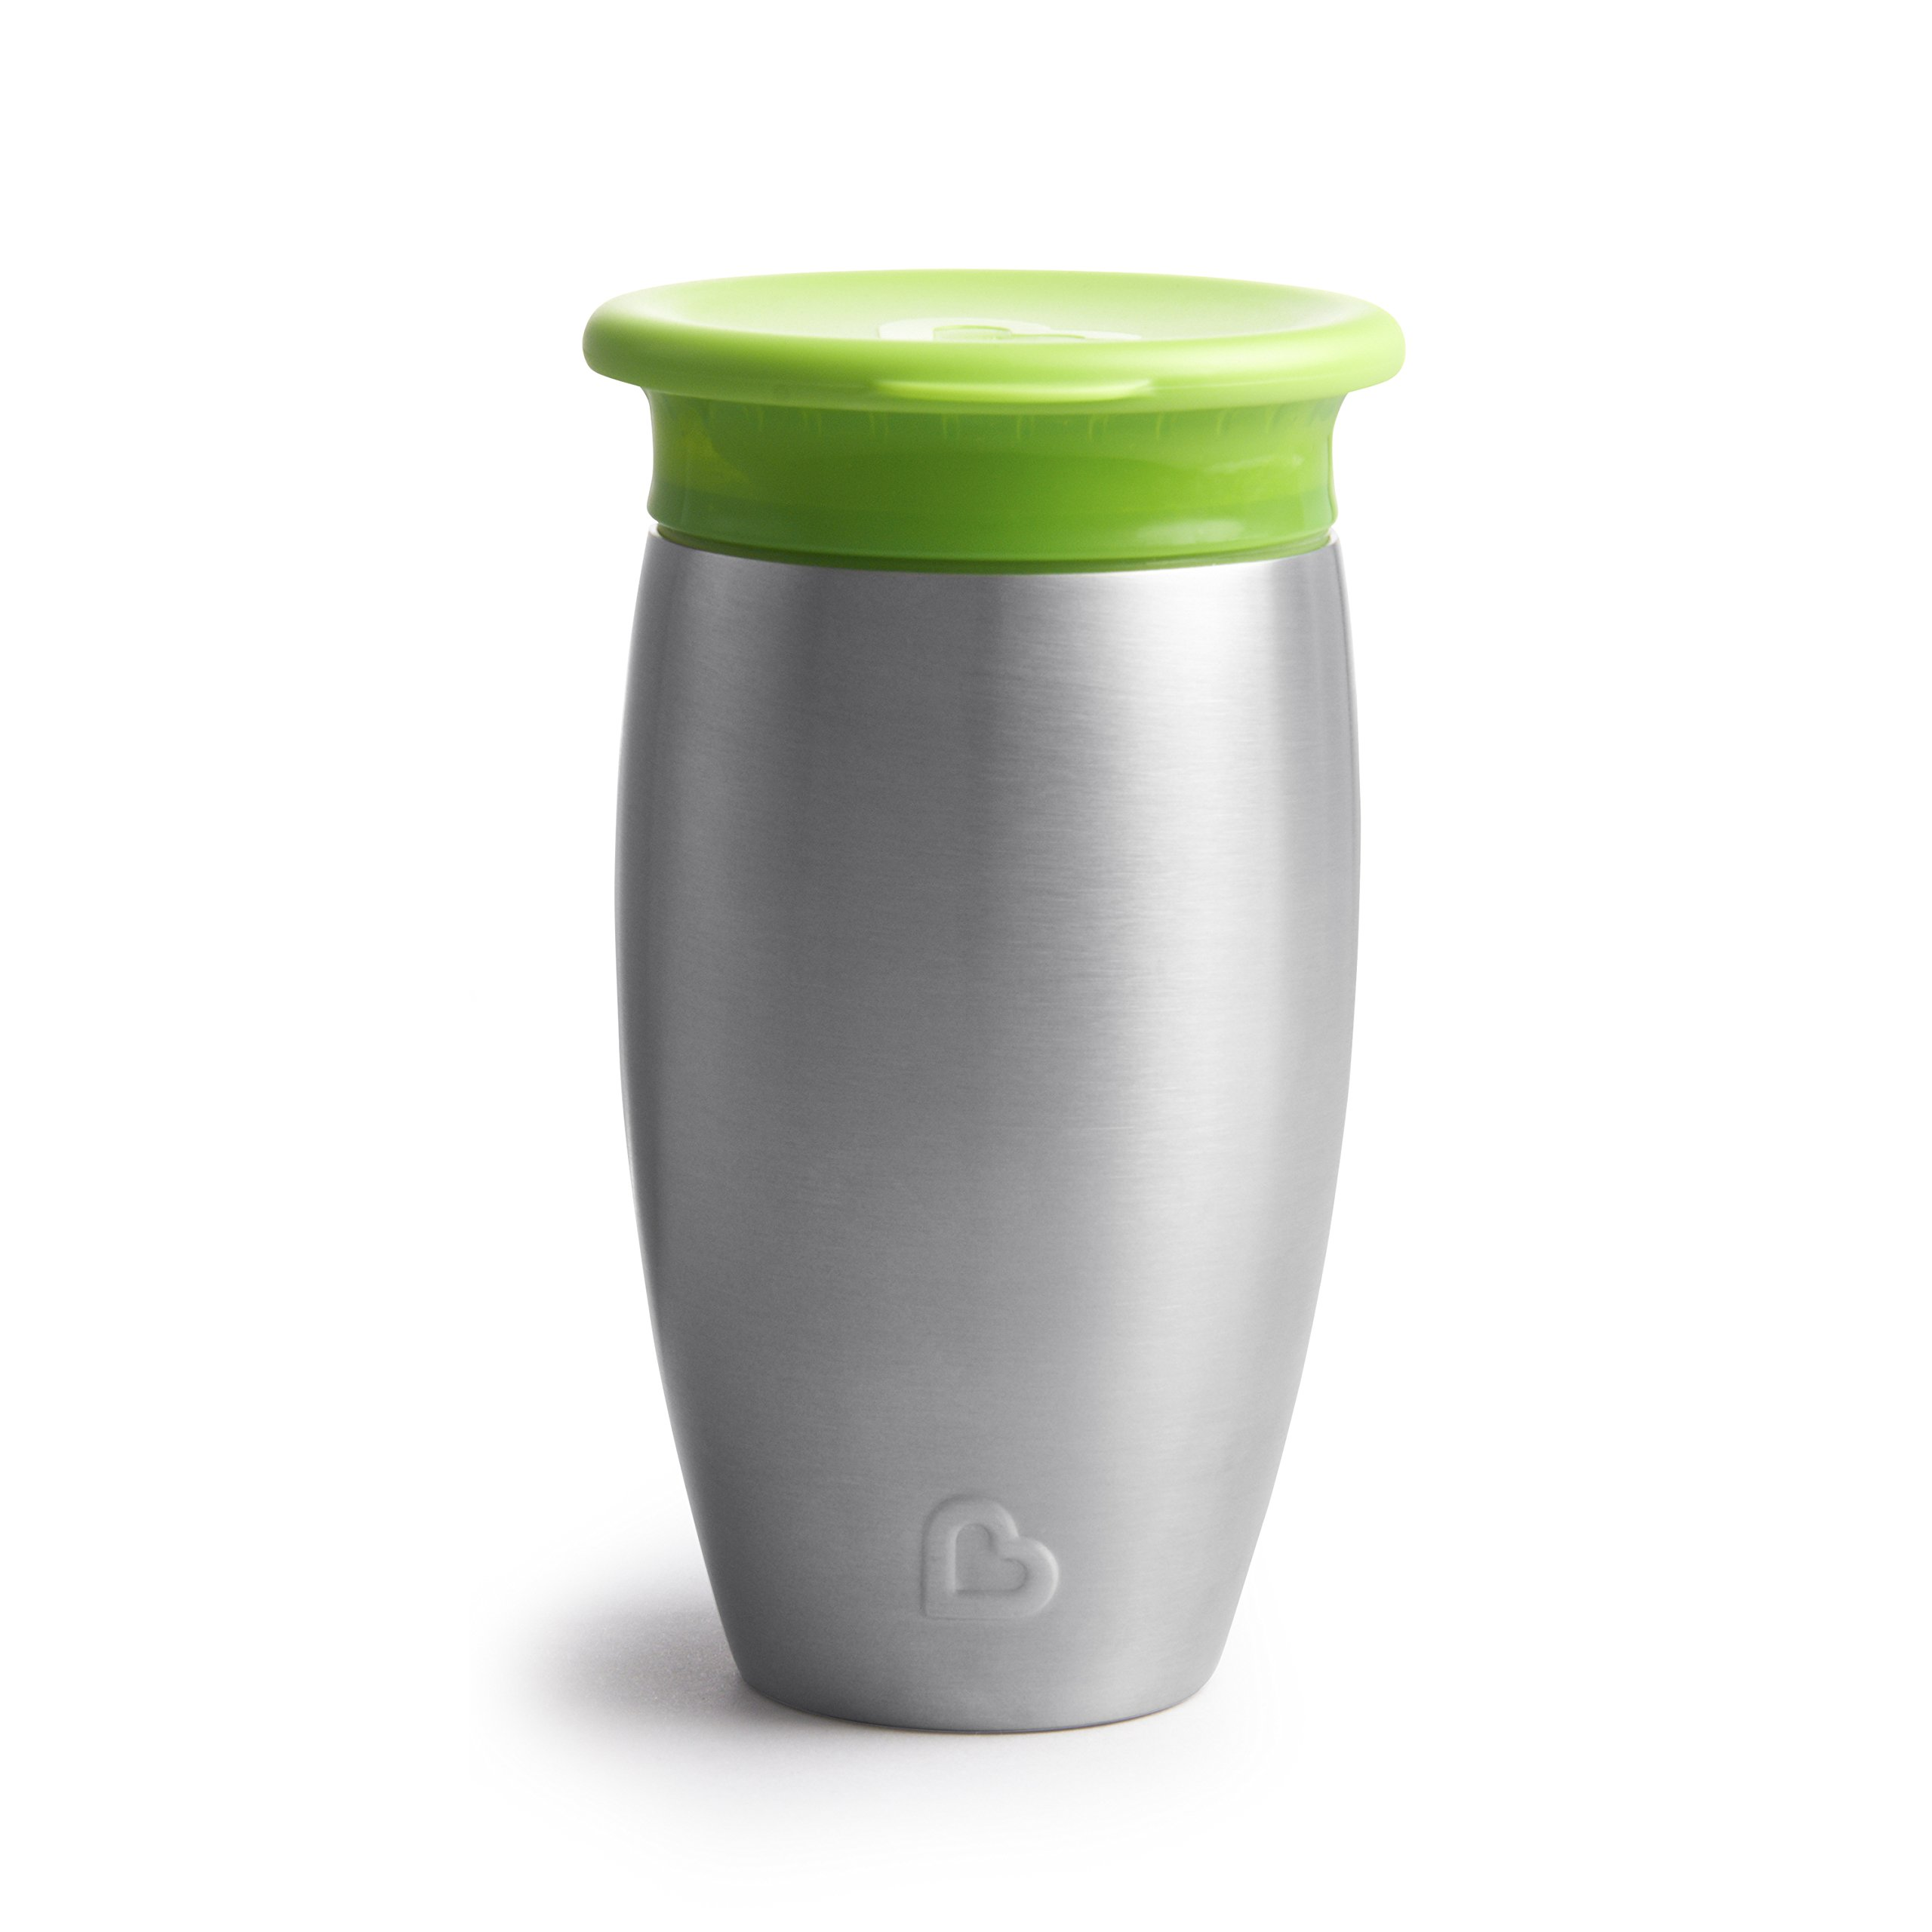 Munchkin Miracle Stainless Steel 360 Sippy Cup, Green, 10 Ounce by Munchkin (Image #4)